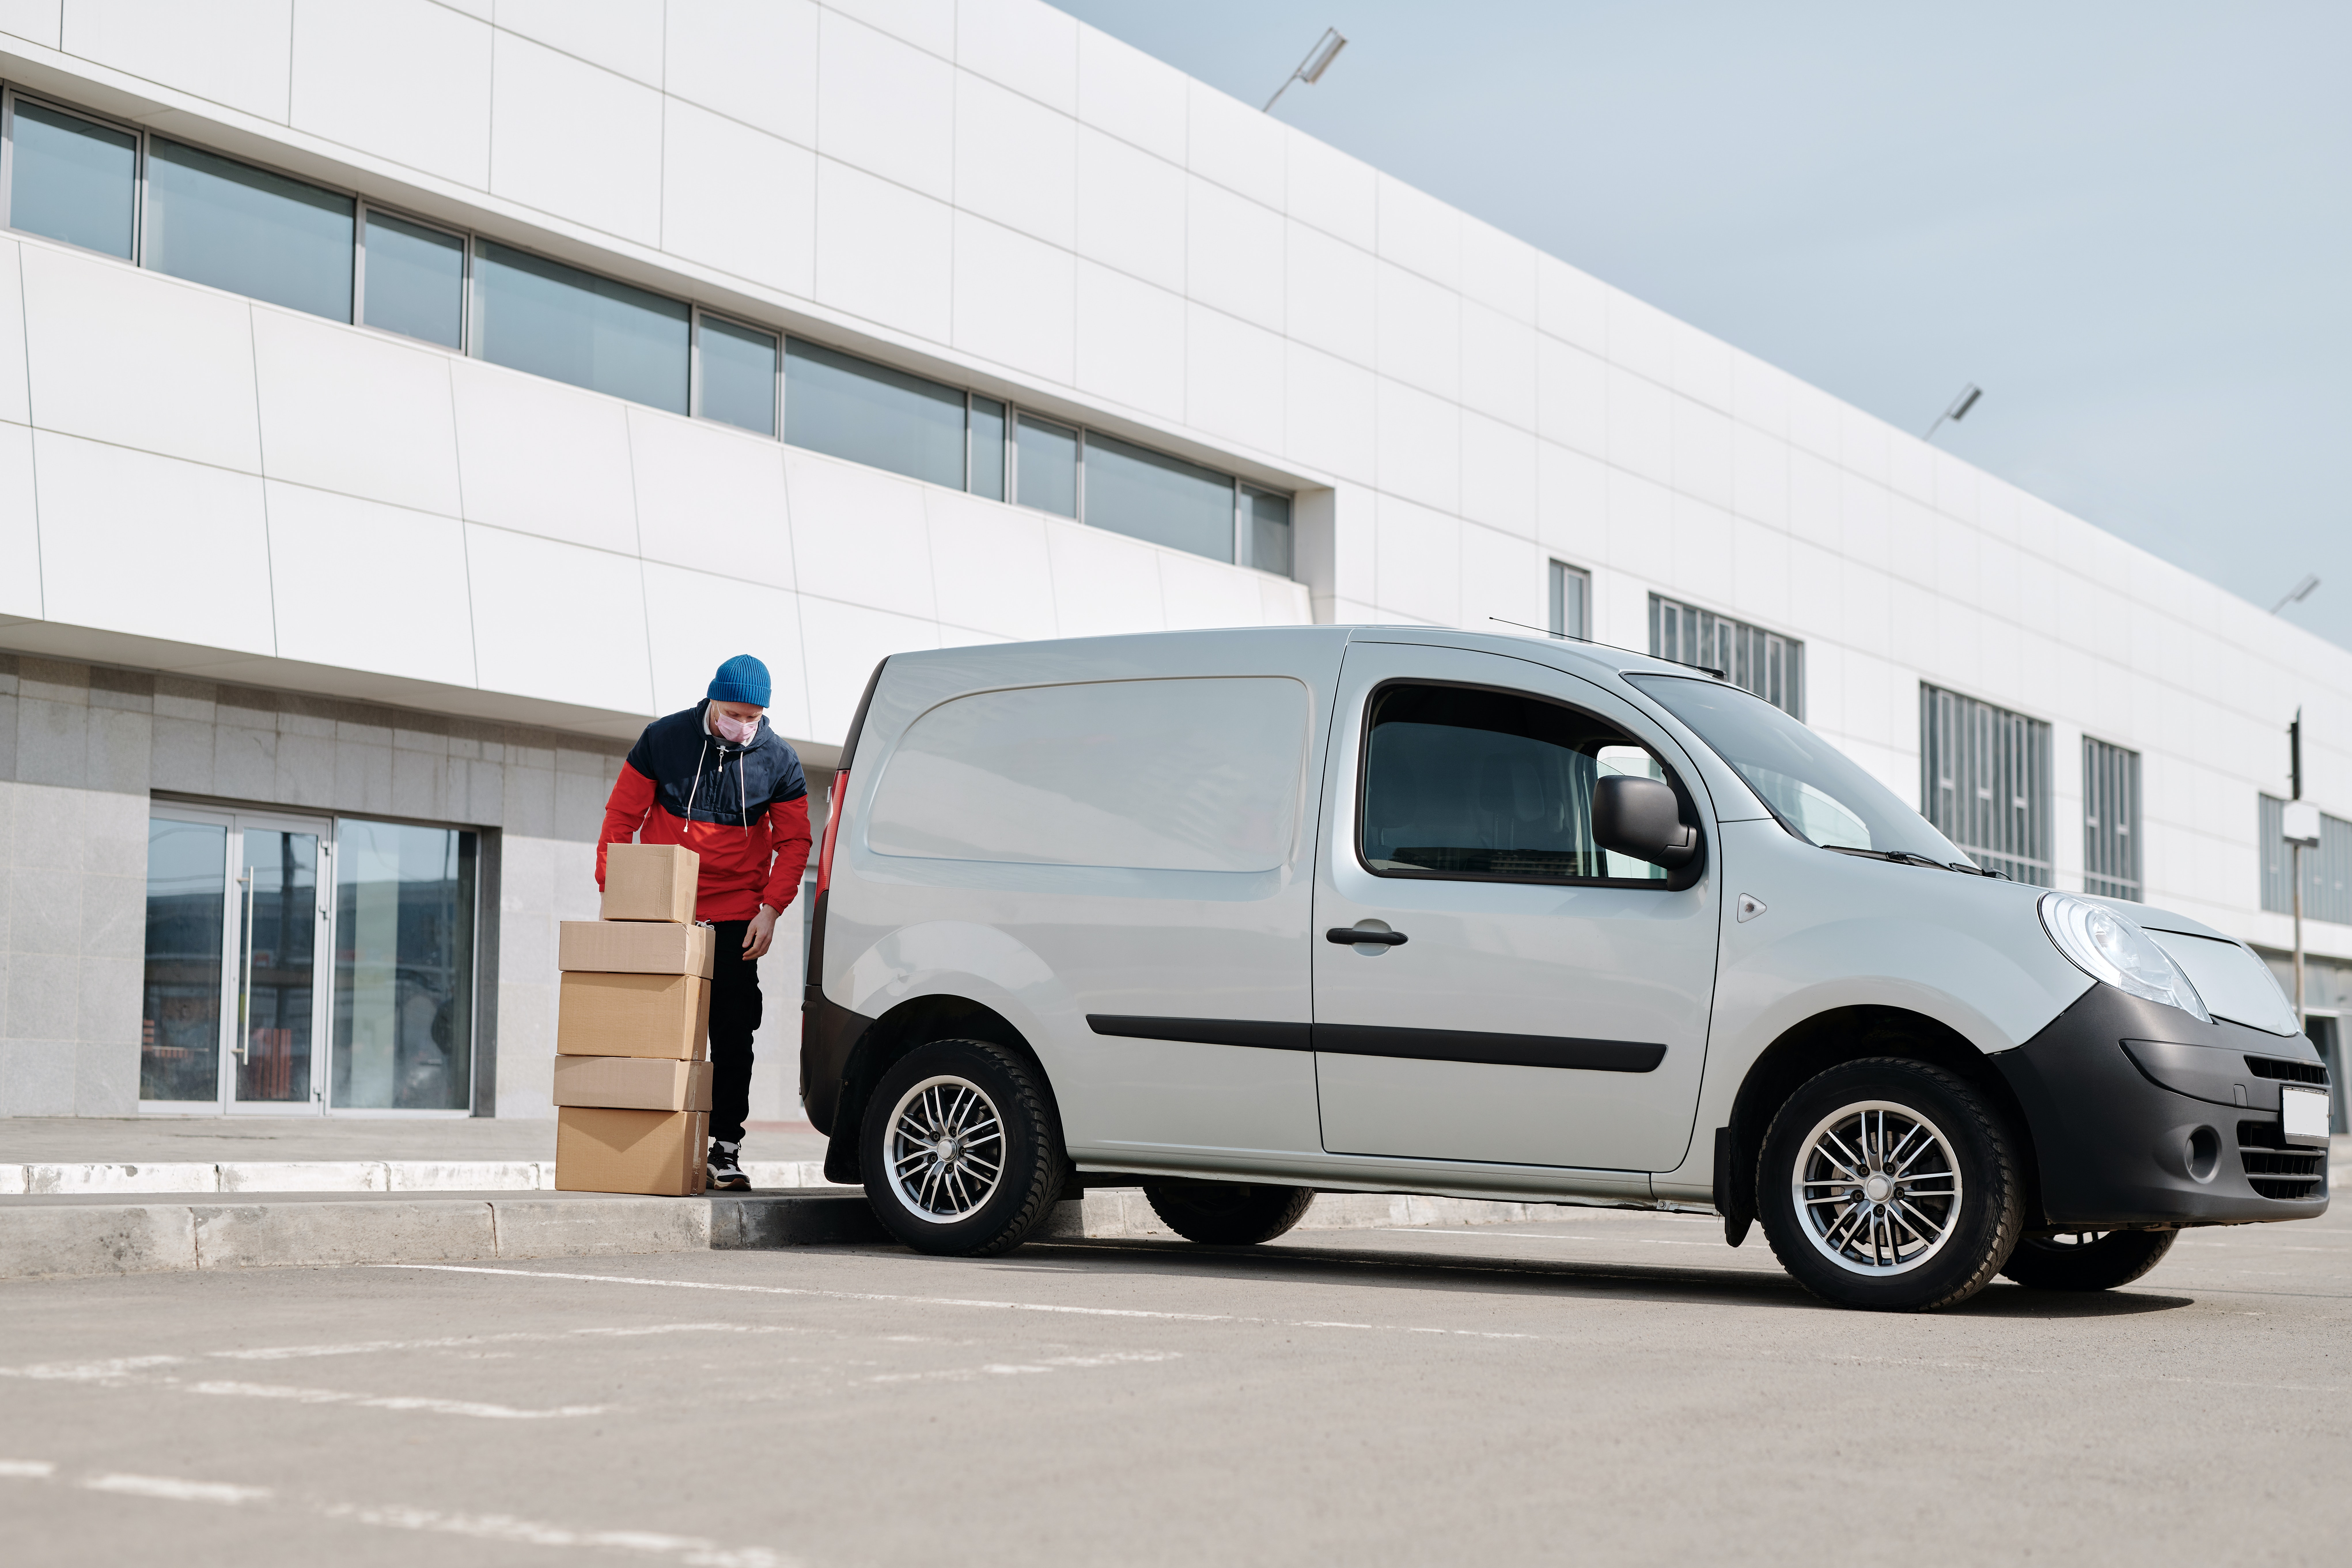 delivery-man-with-boxes-next-to-a-white-van-4391470_1